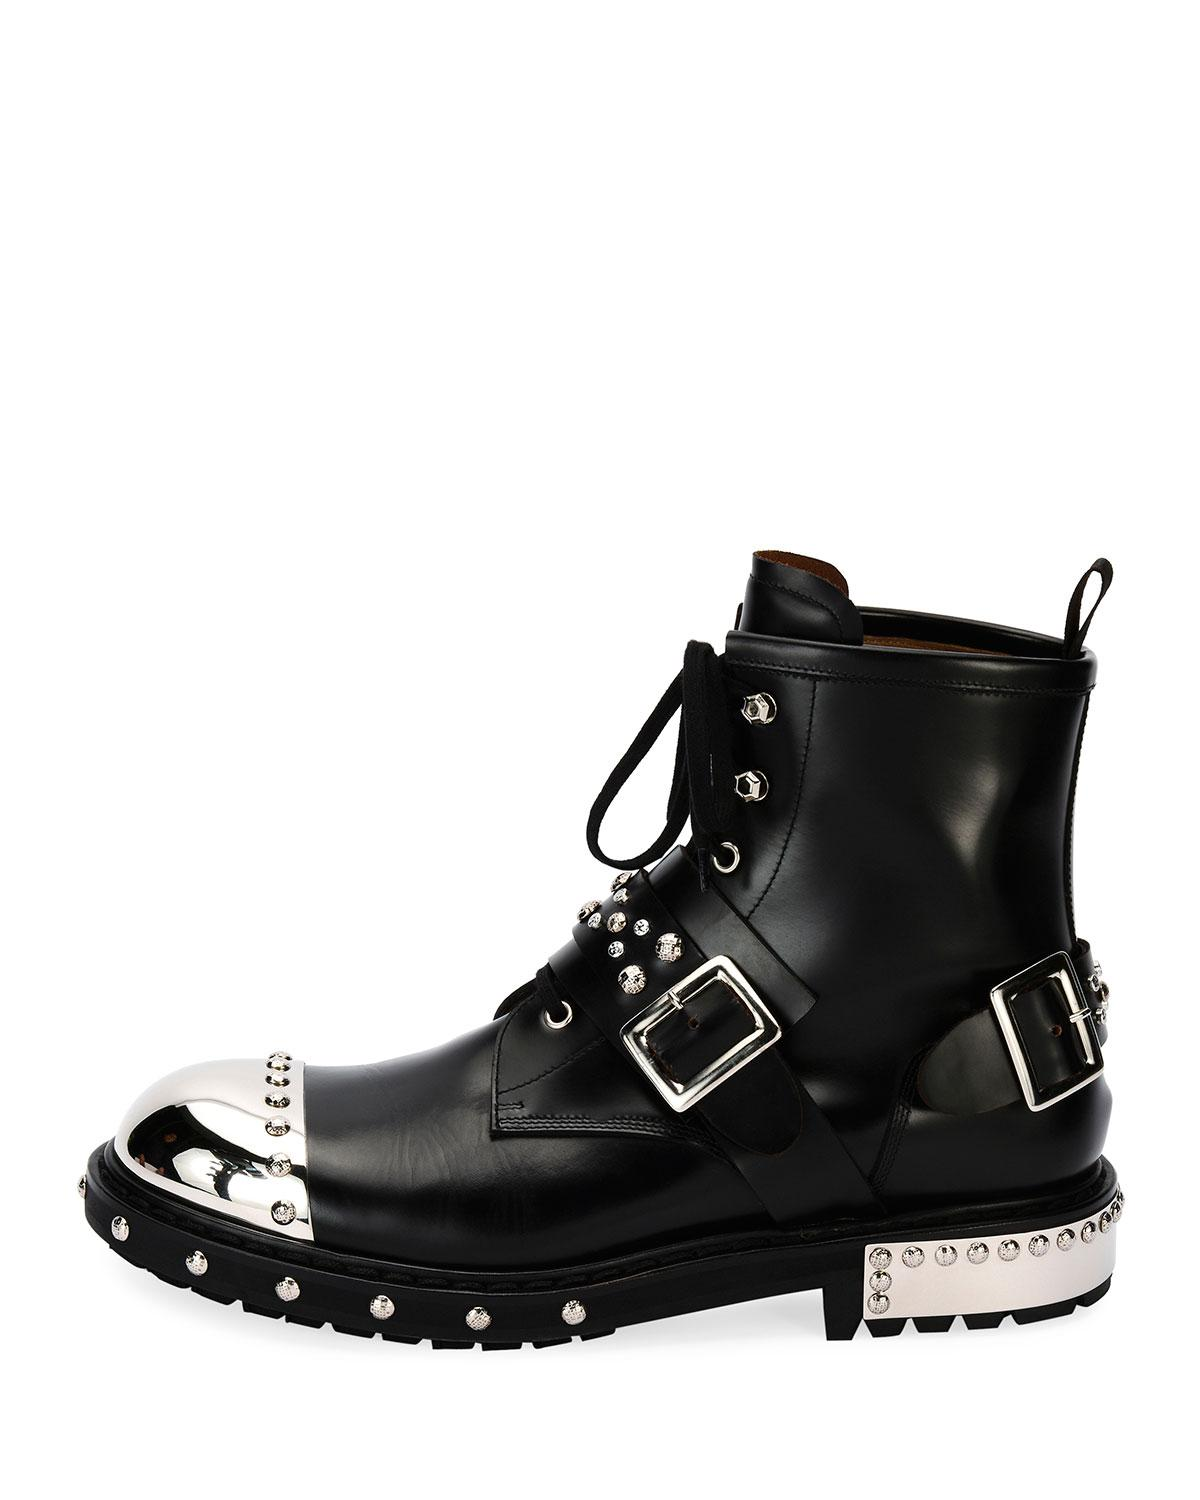 Alexander McQueen Black Studded Lace-Up Boots ktcIc